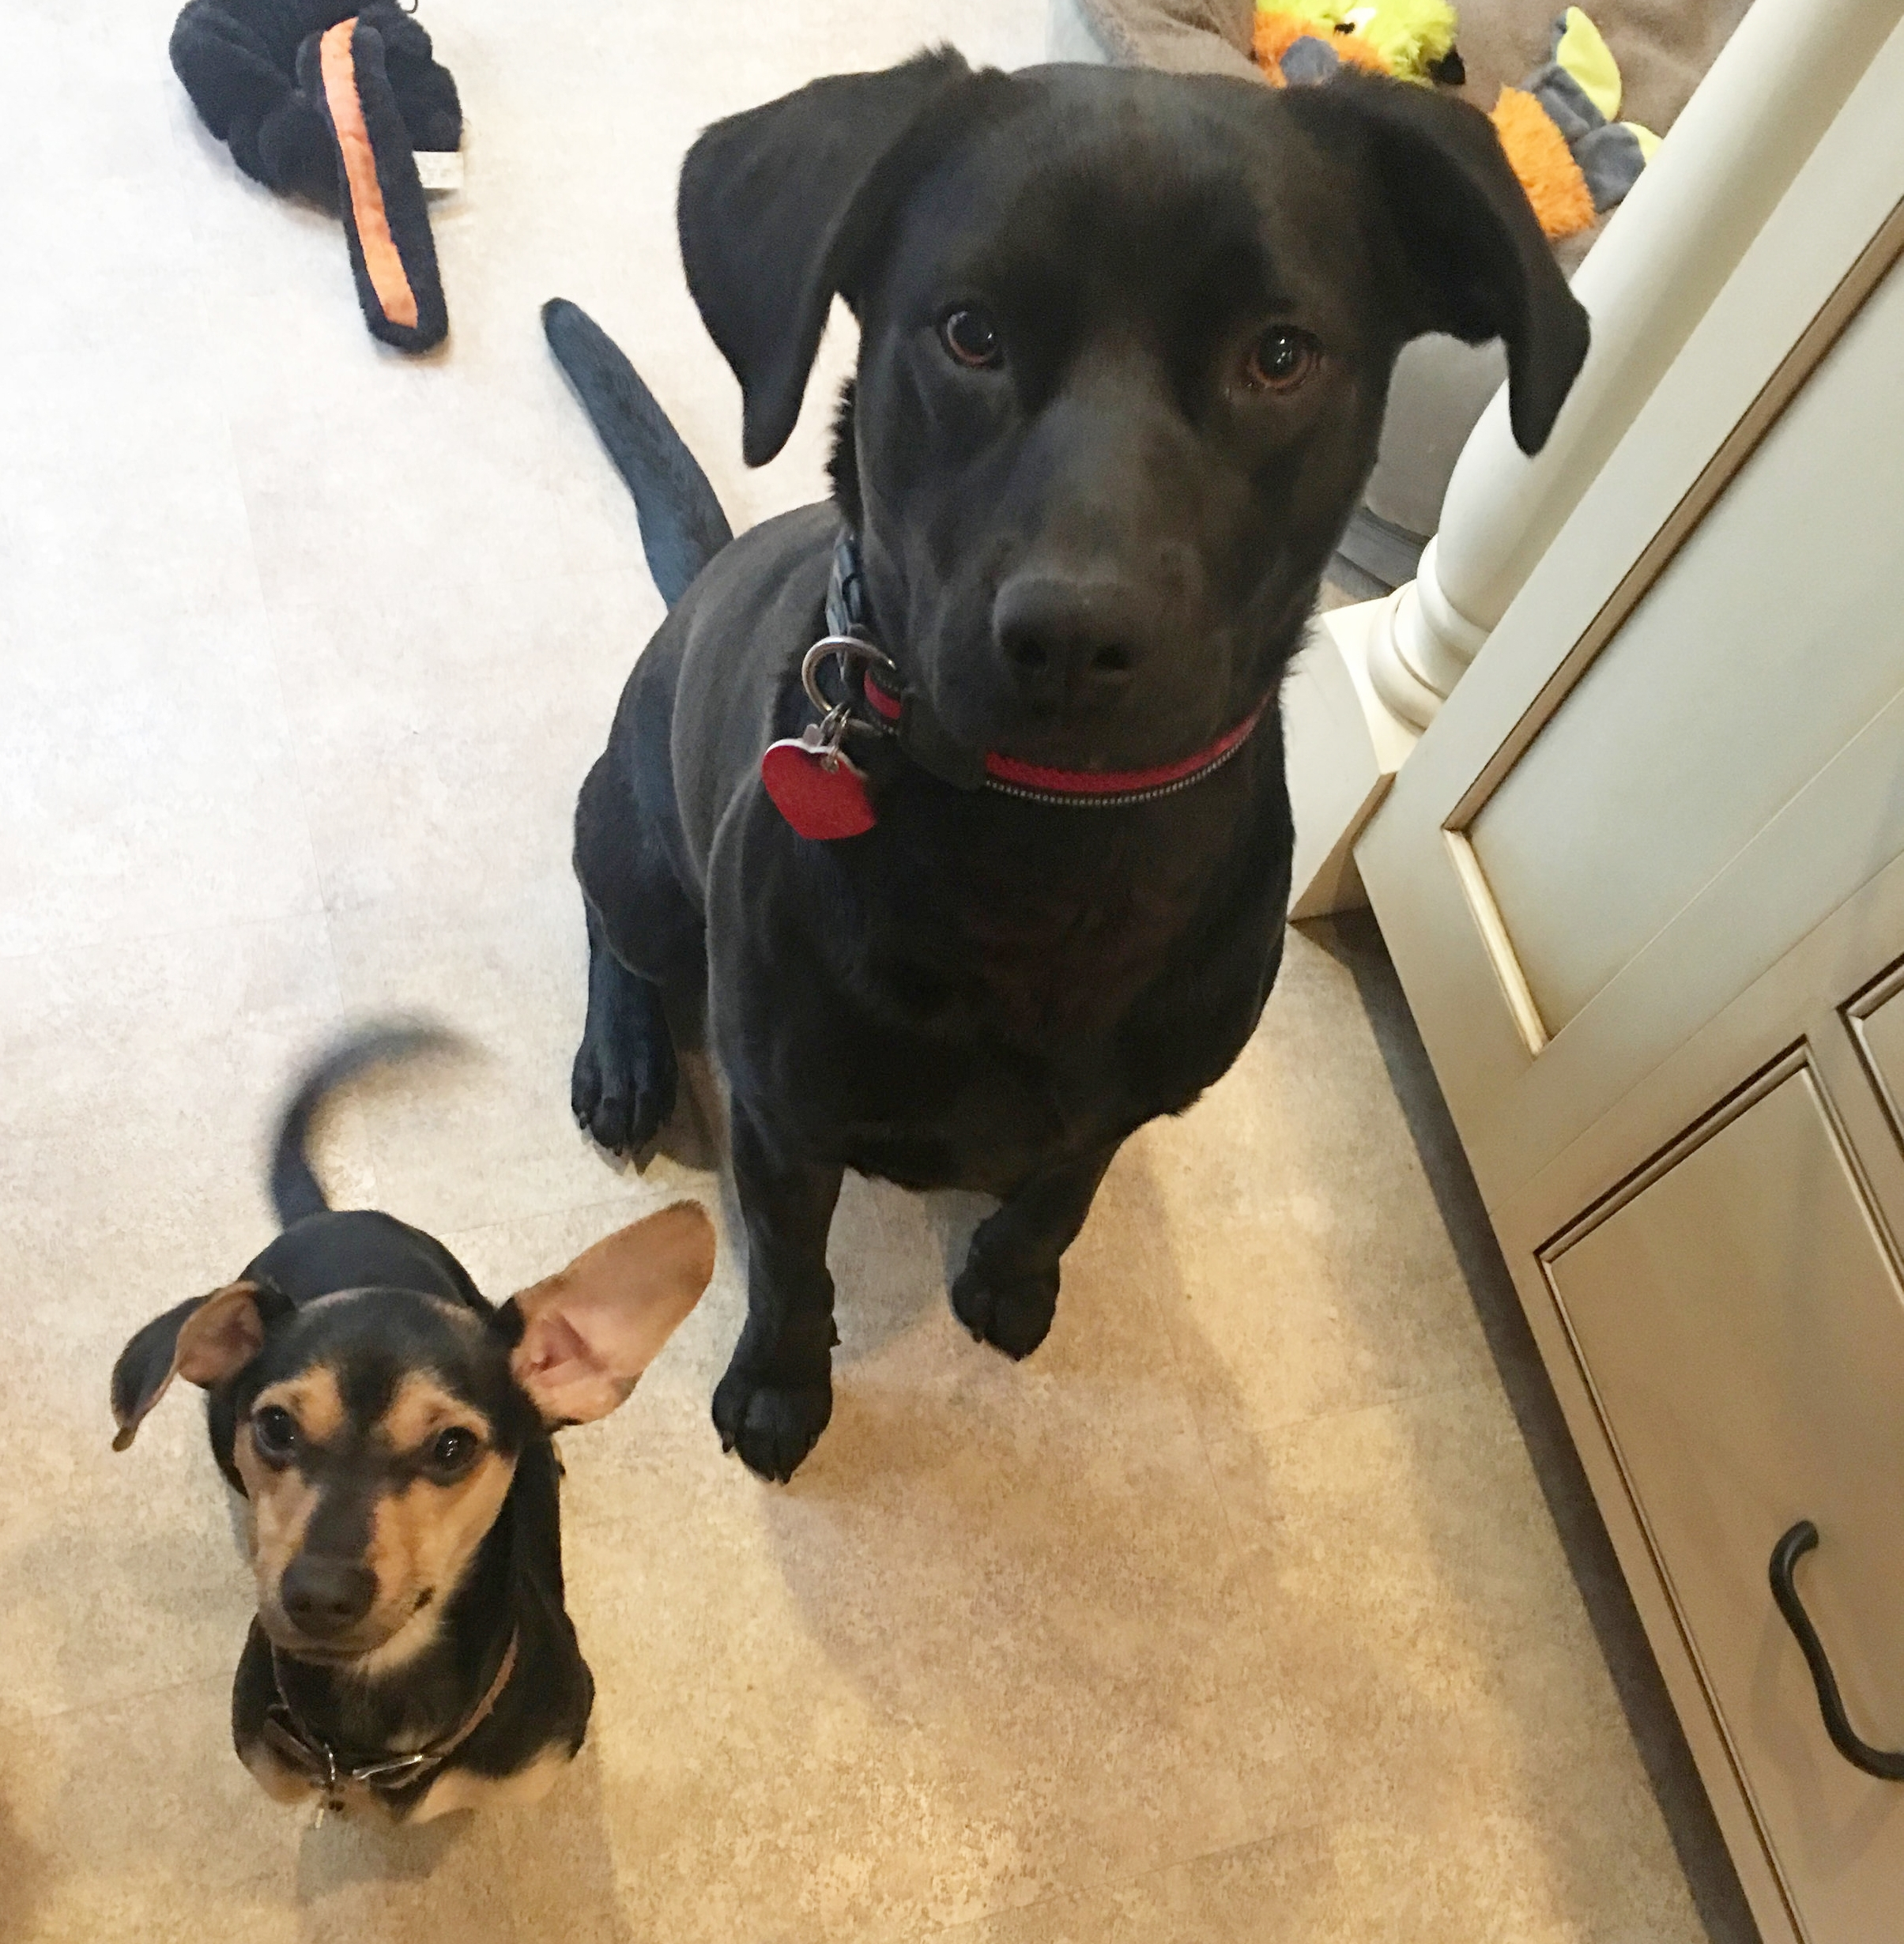 Dizzy and Pancho - Our house is alive with all the shenanigans and laughter a young Lab brings with him, and we are ever thankful to Lulu's for bringing Dizzy into our lives. Our son and his fiancée are equally thrilled with Pancho, our Lulu's